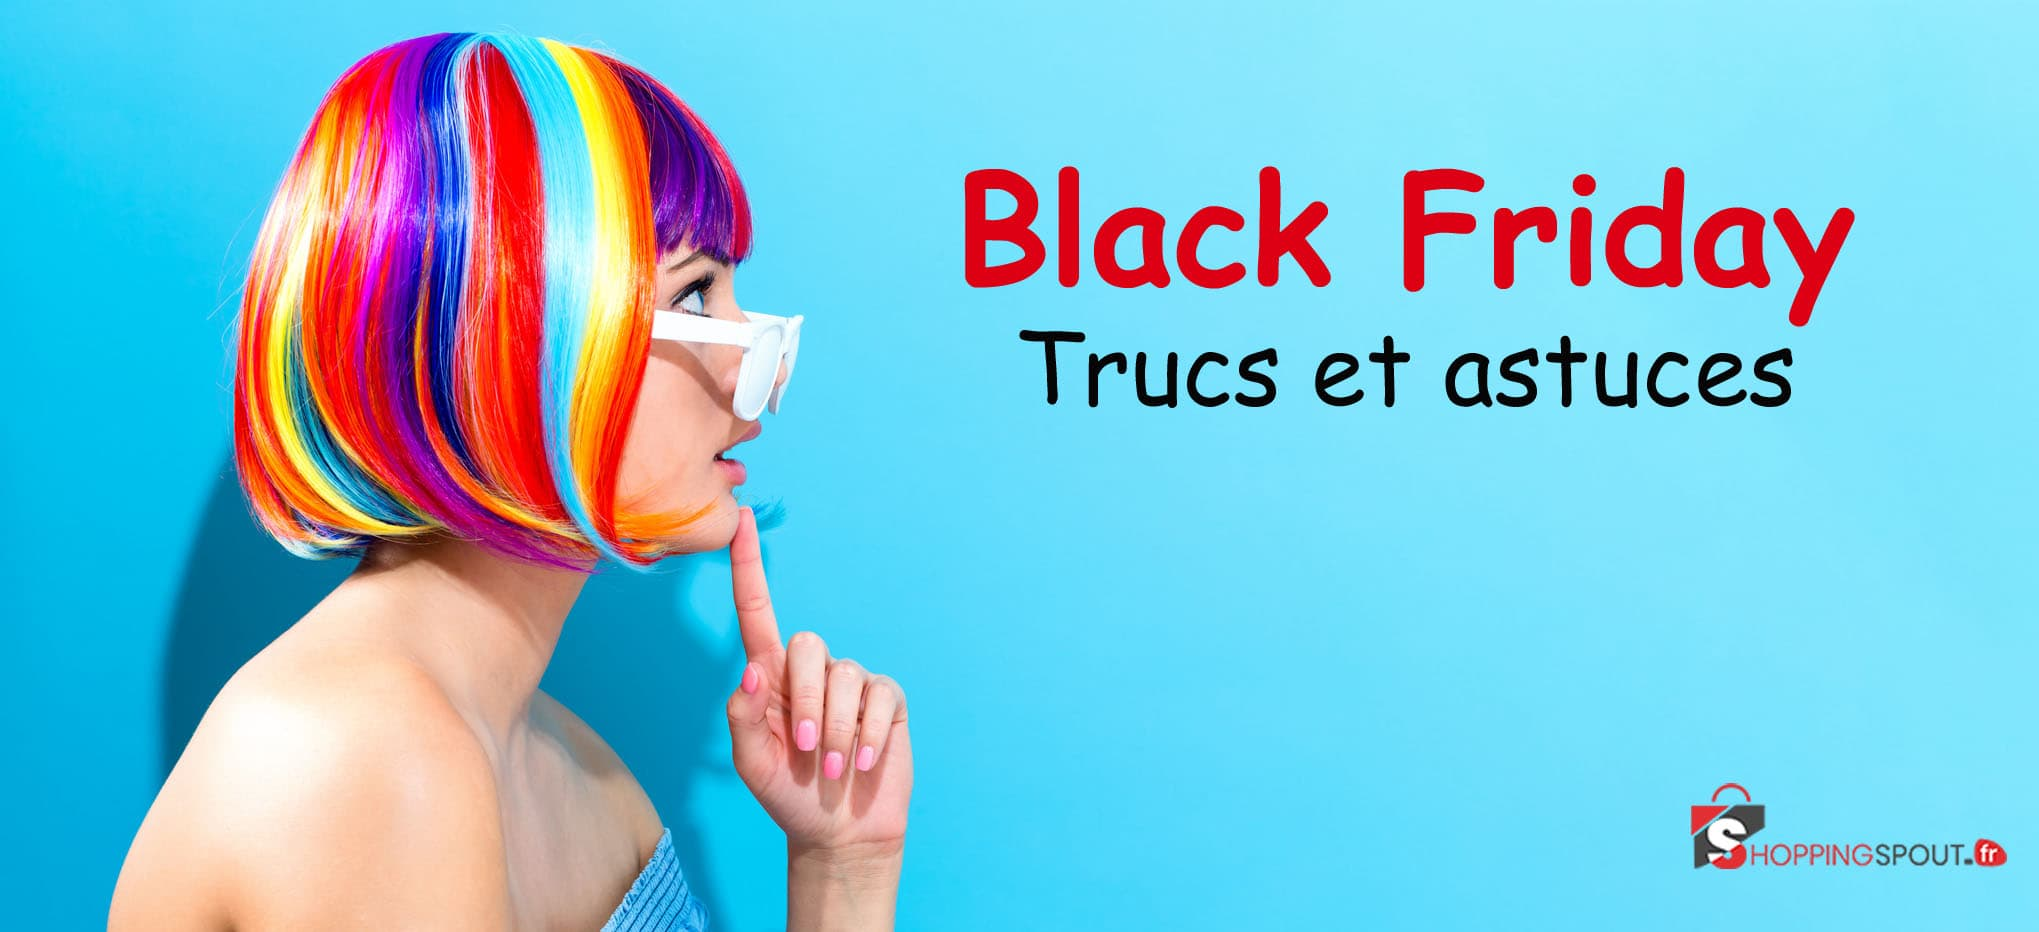 Black Friday bon plan et Code Promo